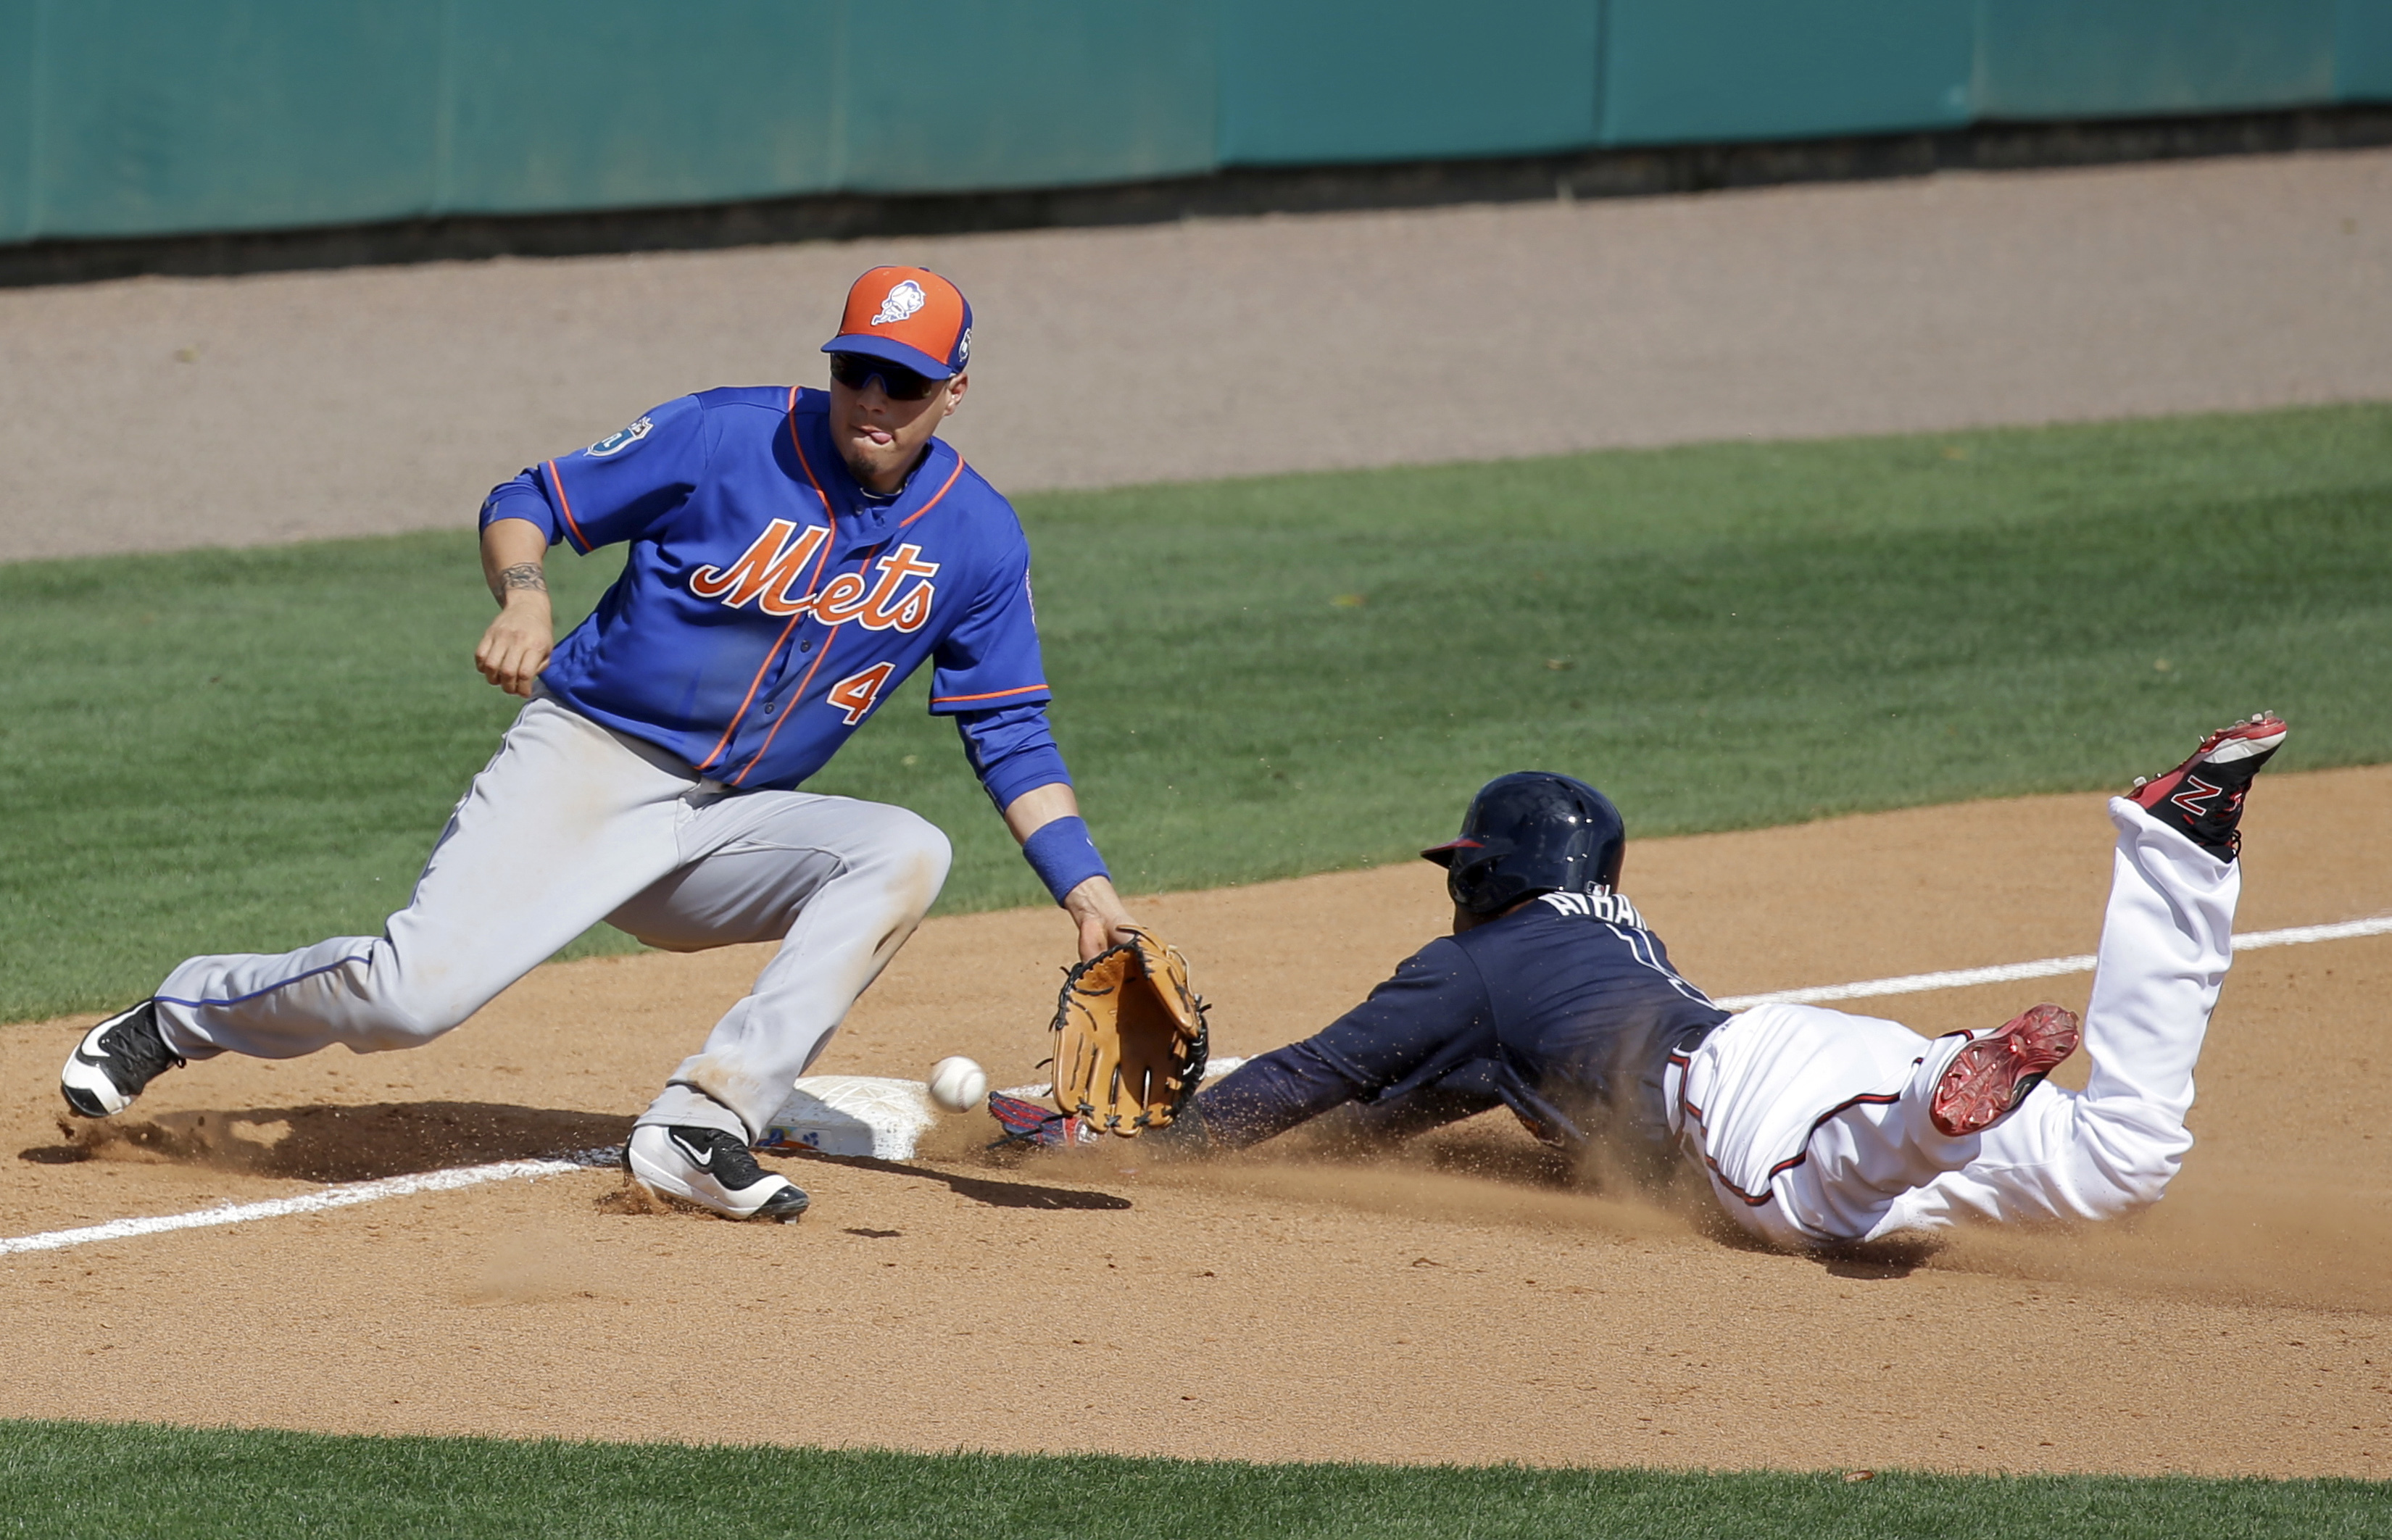 Atlanta Braves' Erick Aybar, right, slides into third base as New York Mets shortstop Wilmer Flores waits for the ball to make the tag during the fifth inning of a spring training baseball game, Tuesday, March 8, 2016, in Kissimmee, Fla. (AP Photo/John Ra